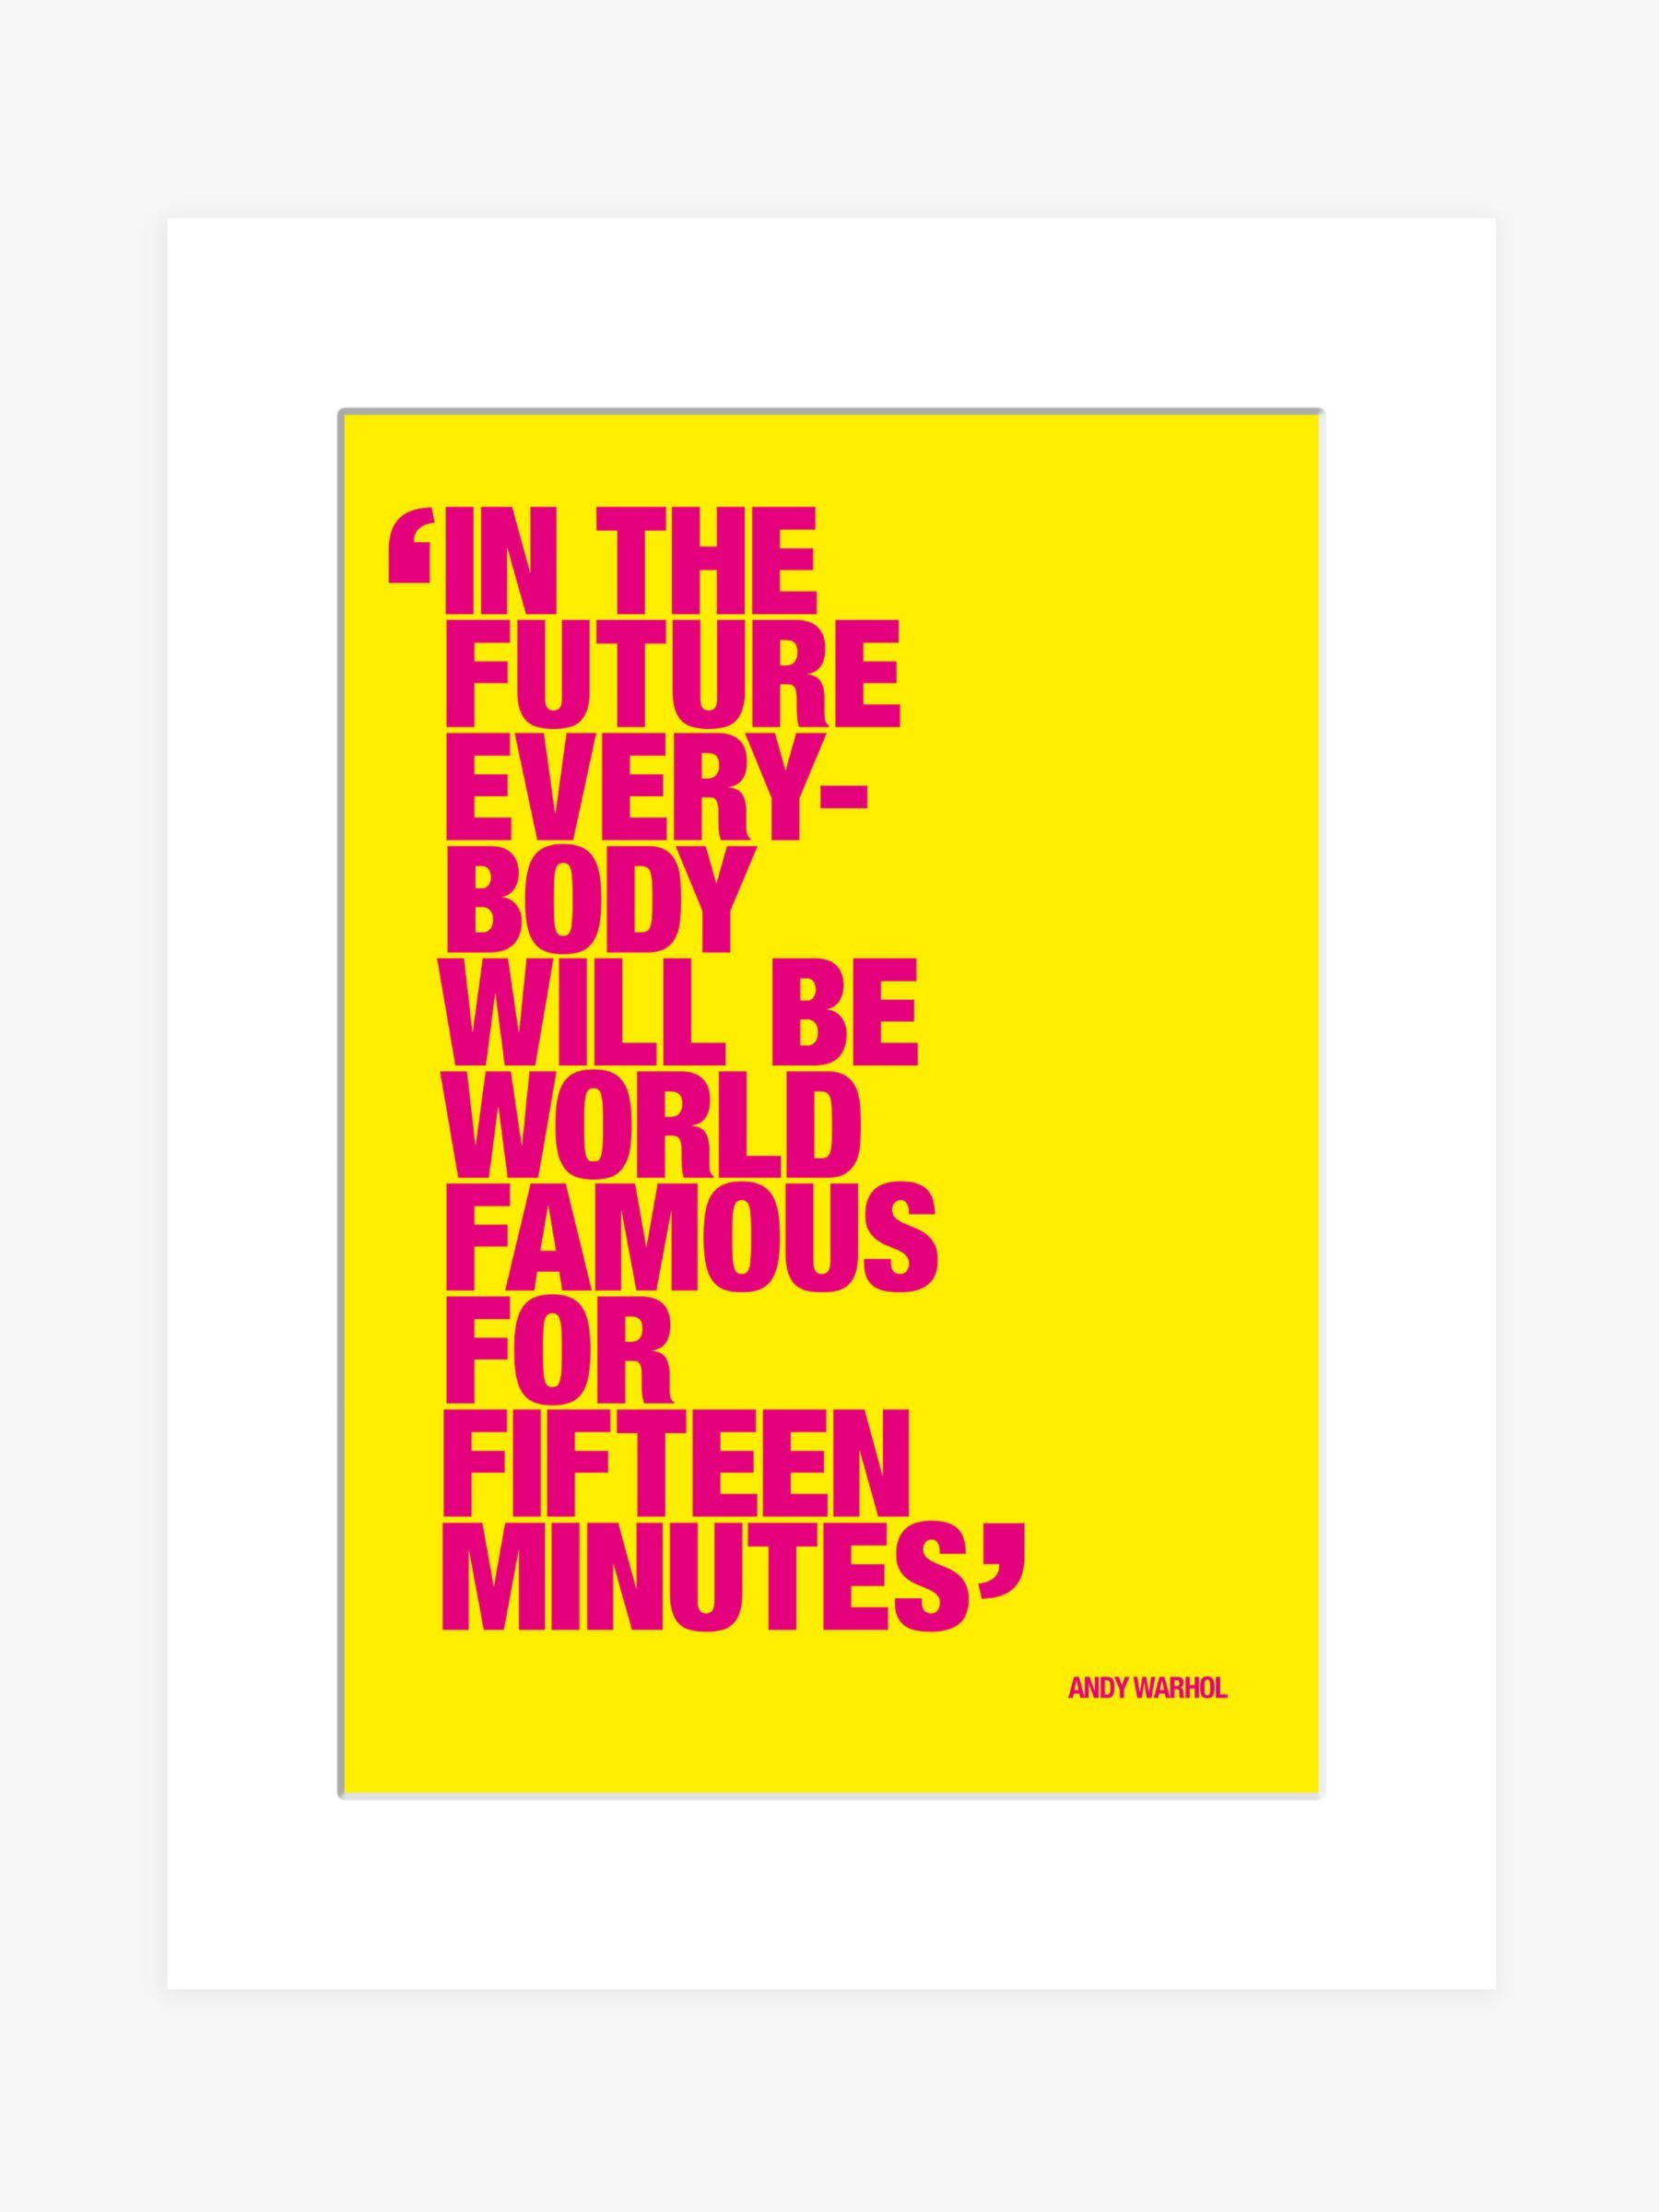 Andy Warhol - Famous For Fifteen Minutes Unframed Print & Mount, 40 x 30cm, Yellow/Pink #andywarhol